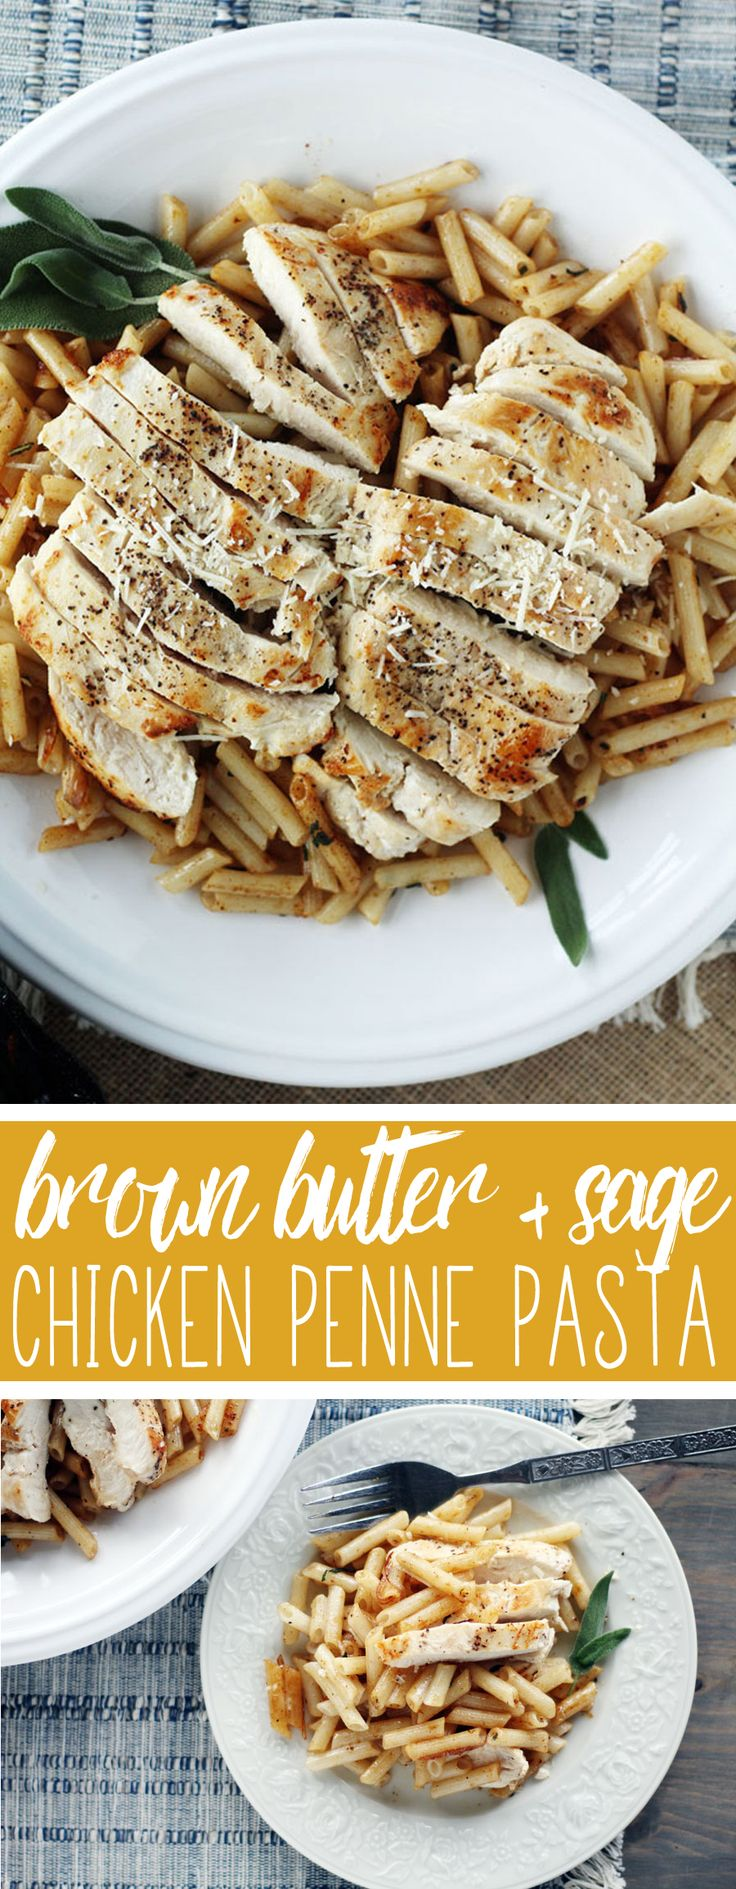 Simply prepared with few ingredients the flavor of Brown Butter + Sage Chicken Penne Pasta is amazing. Earthy sage + golden brown butter + al dente penne.   #chickenpennepasta #chickenandpastarecipe #pastarecipe #tresomega #AD #organicsforlife